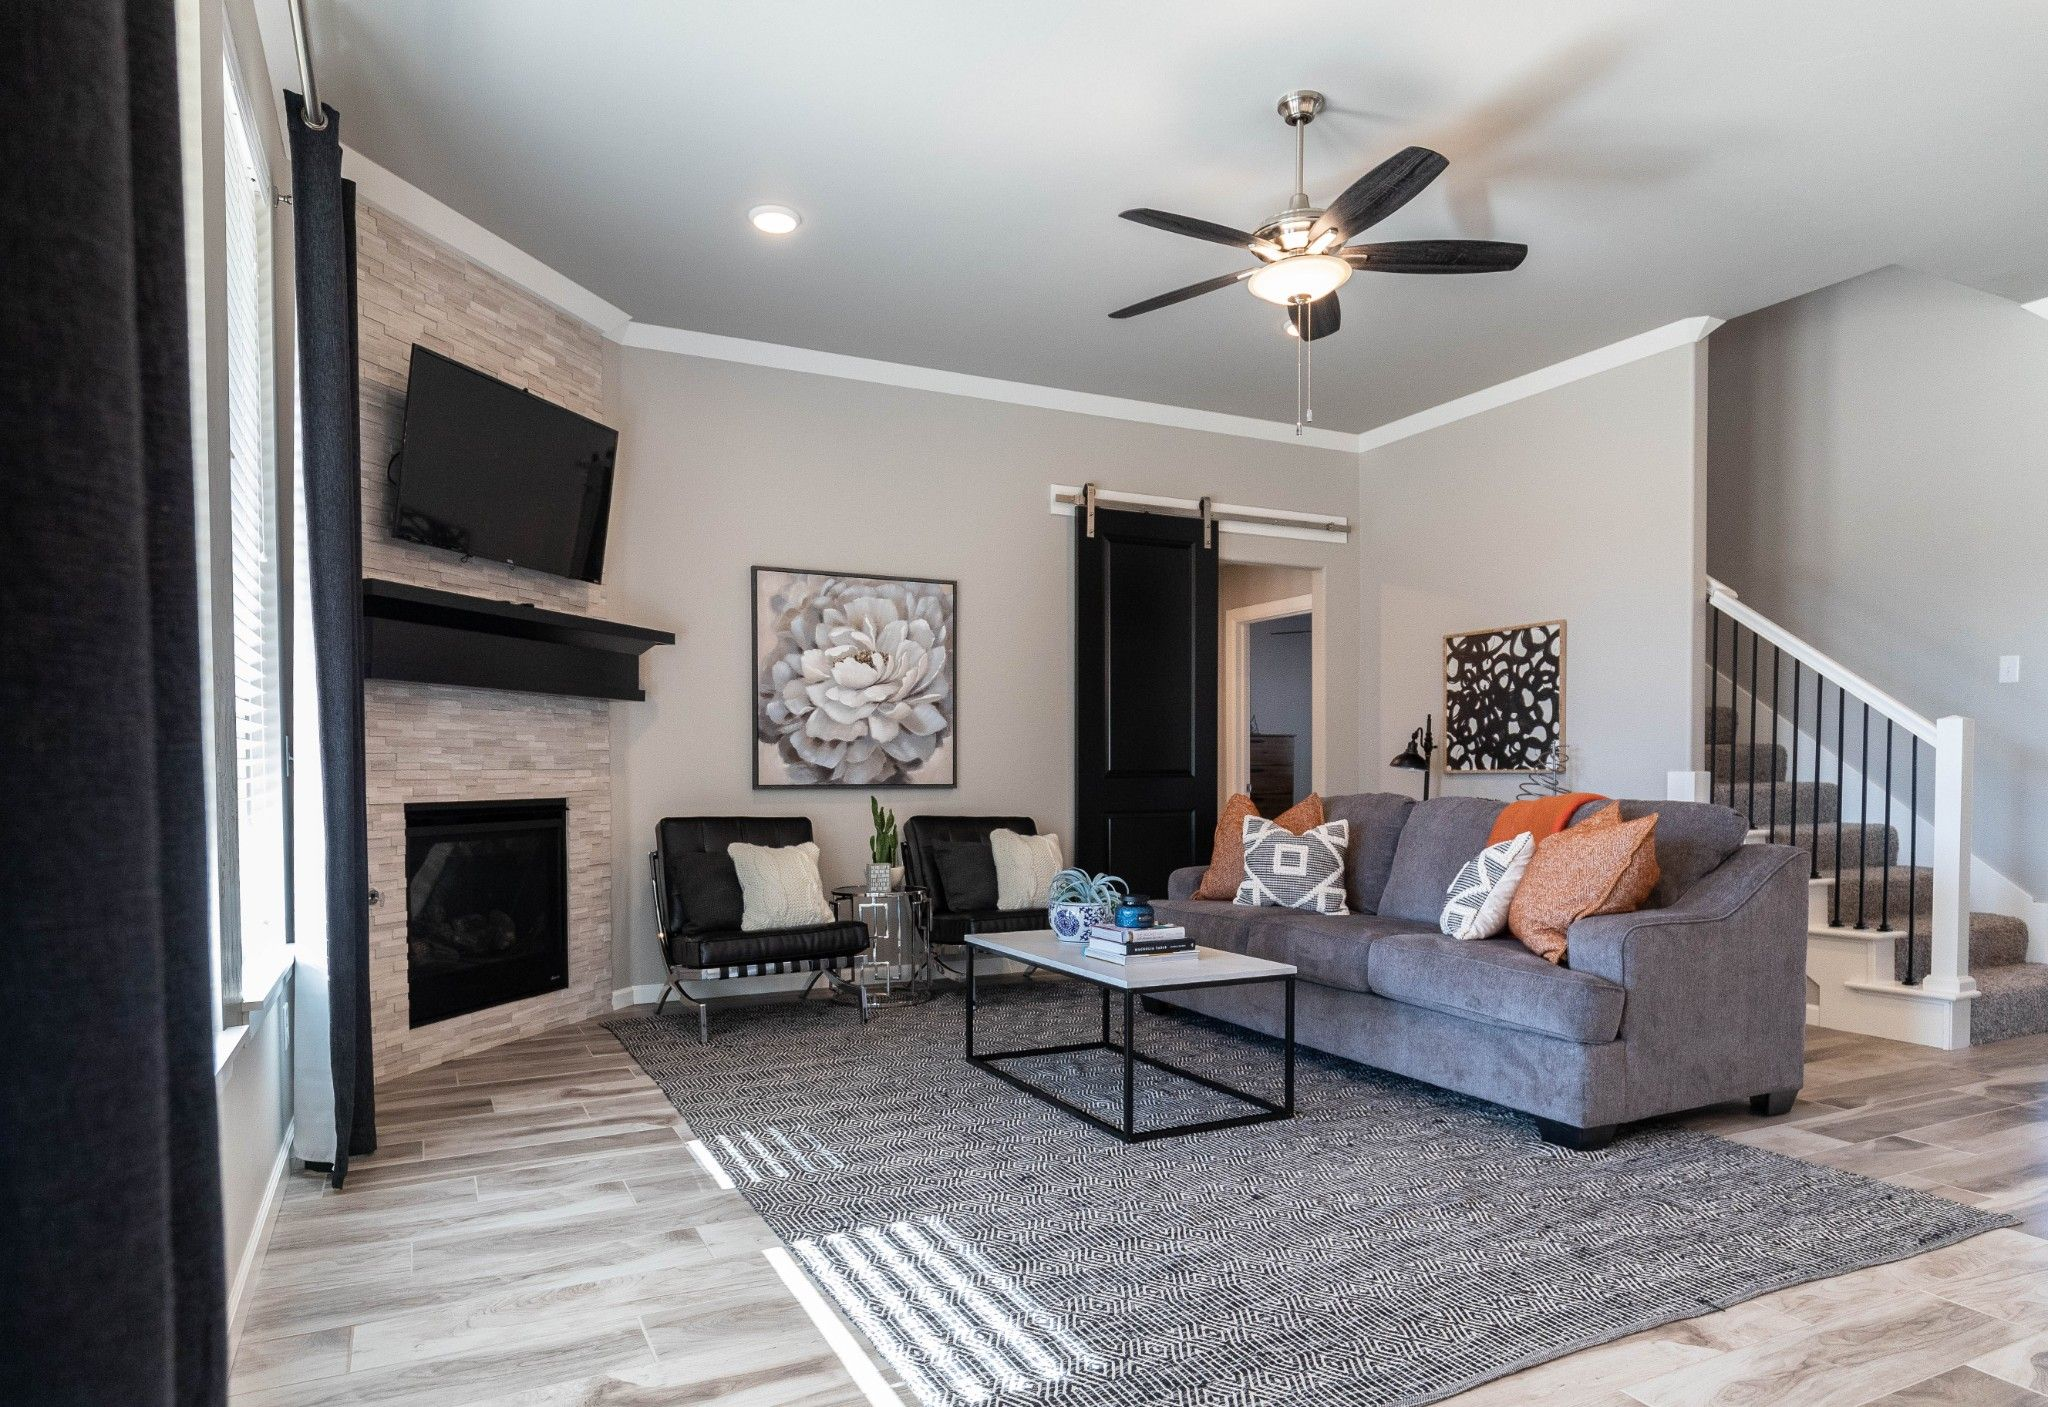 Living Area featured in the Hazel Bonus Room - 5 Bedroom By Homes By Taber in Oklahoma City, OK